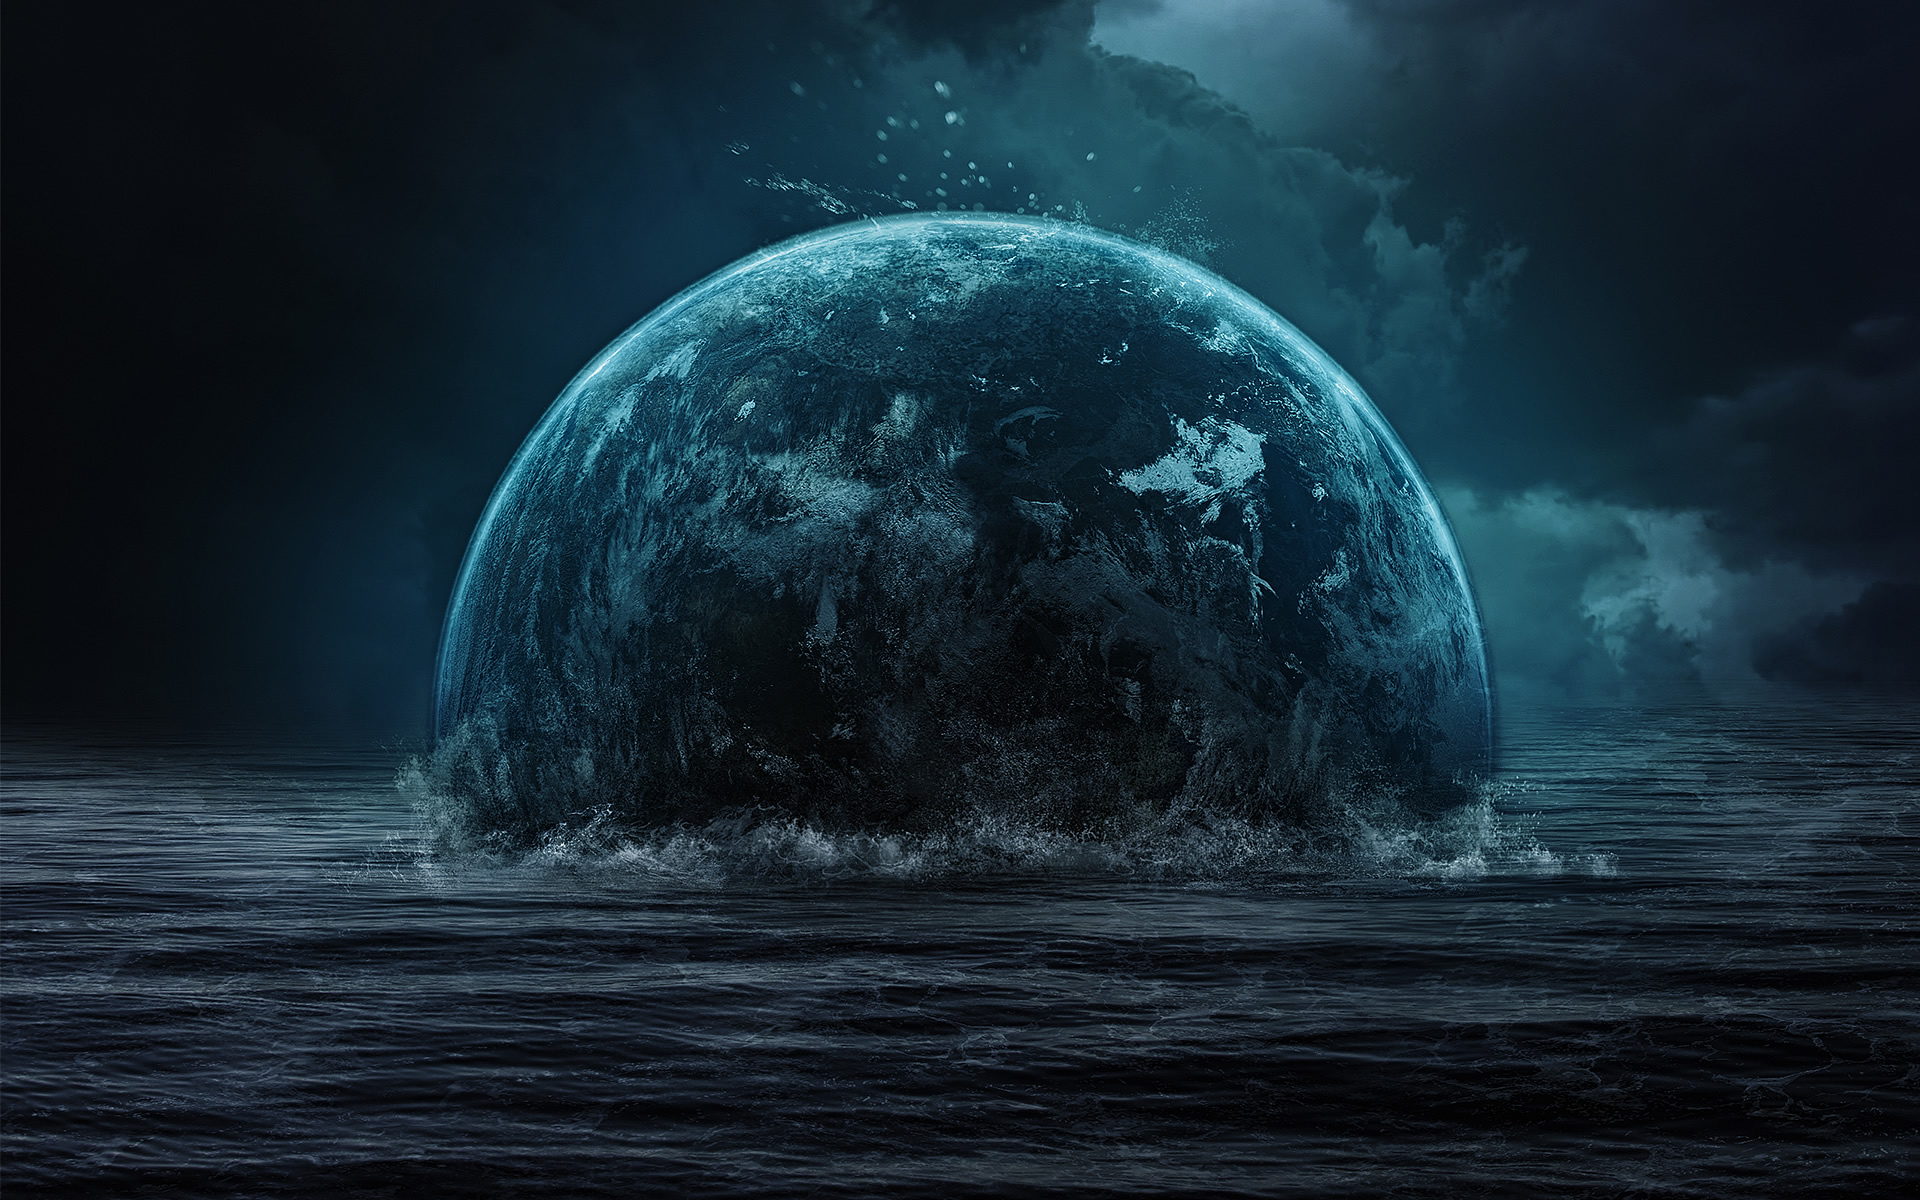 Sea Planet Hd Theme Bin Customization Hd 168975 HD Wallpaper Res 1920x1200